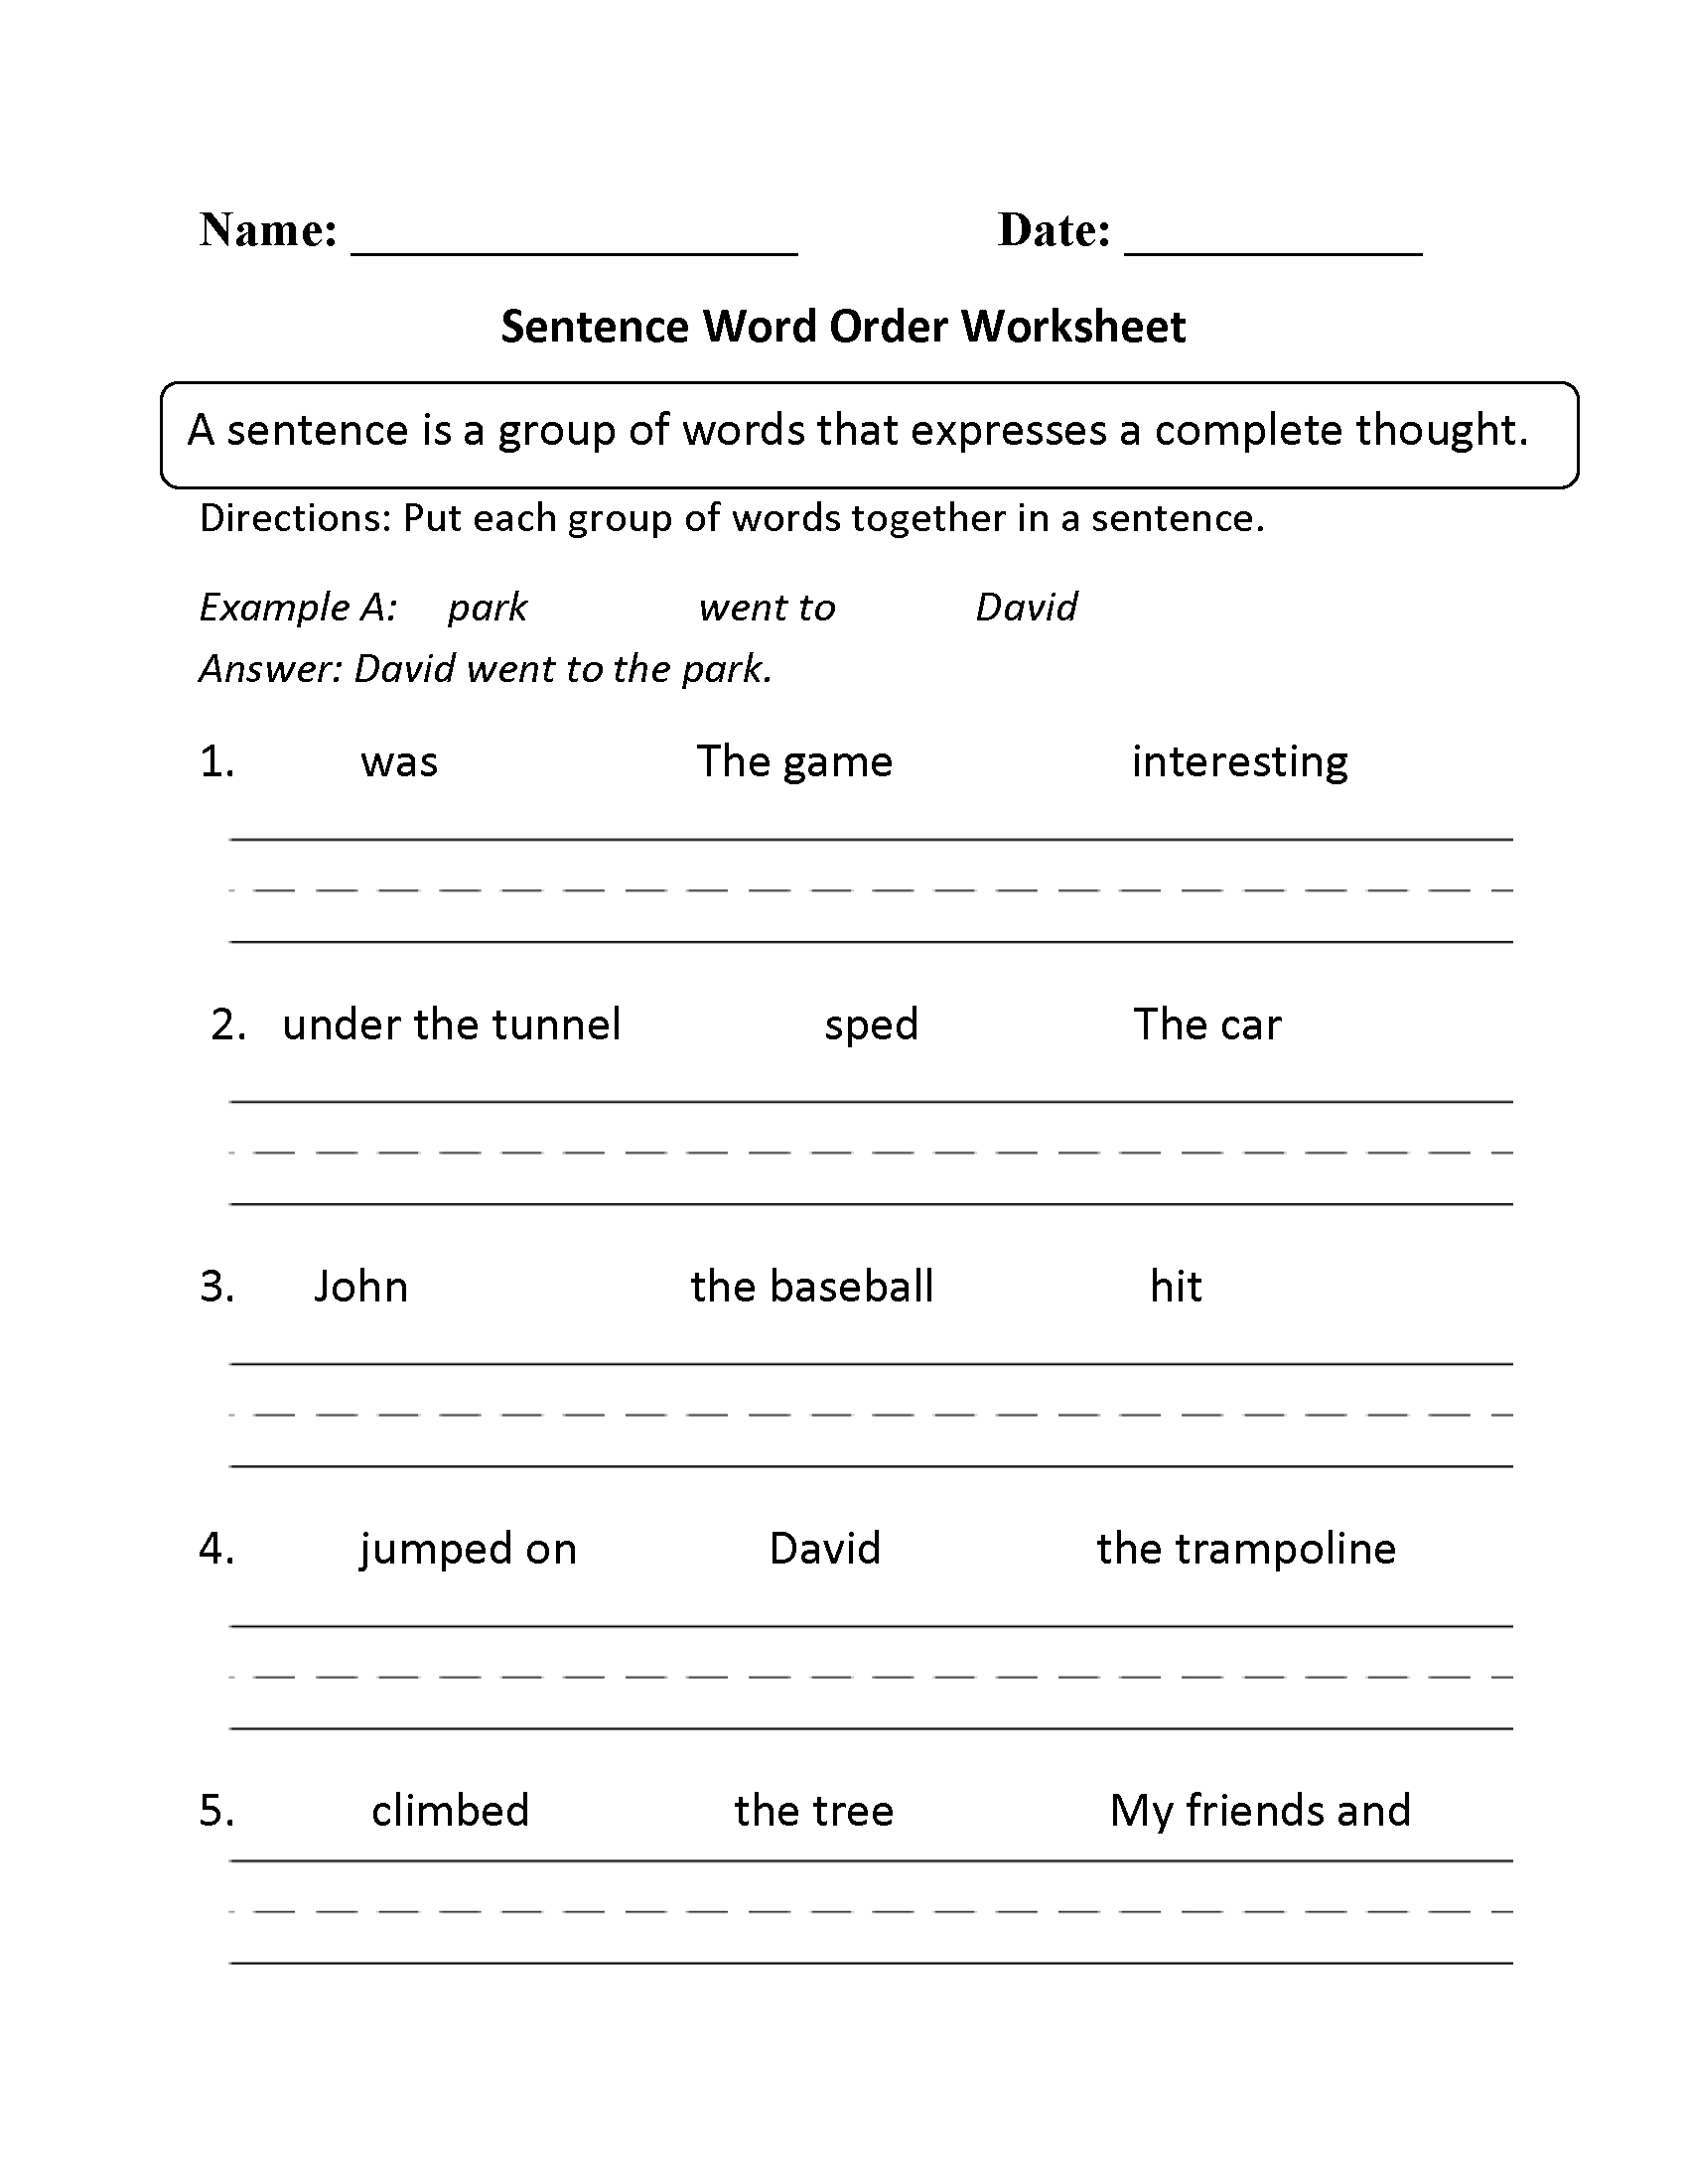 sentence structure worksheets language arts grammar worksheets english grammar worksheets. Black Bedroom Furniture Sets. Home Design Ideas